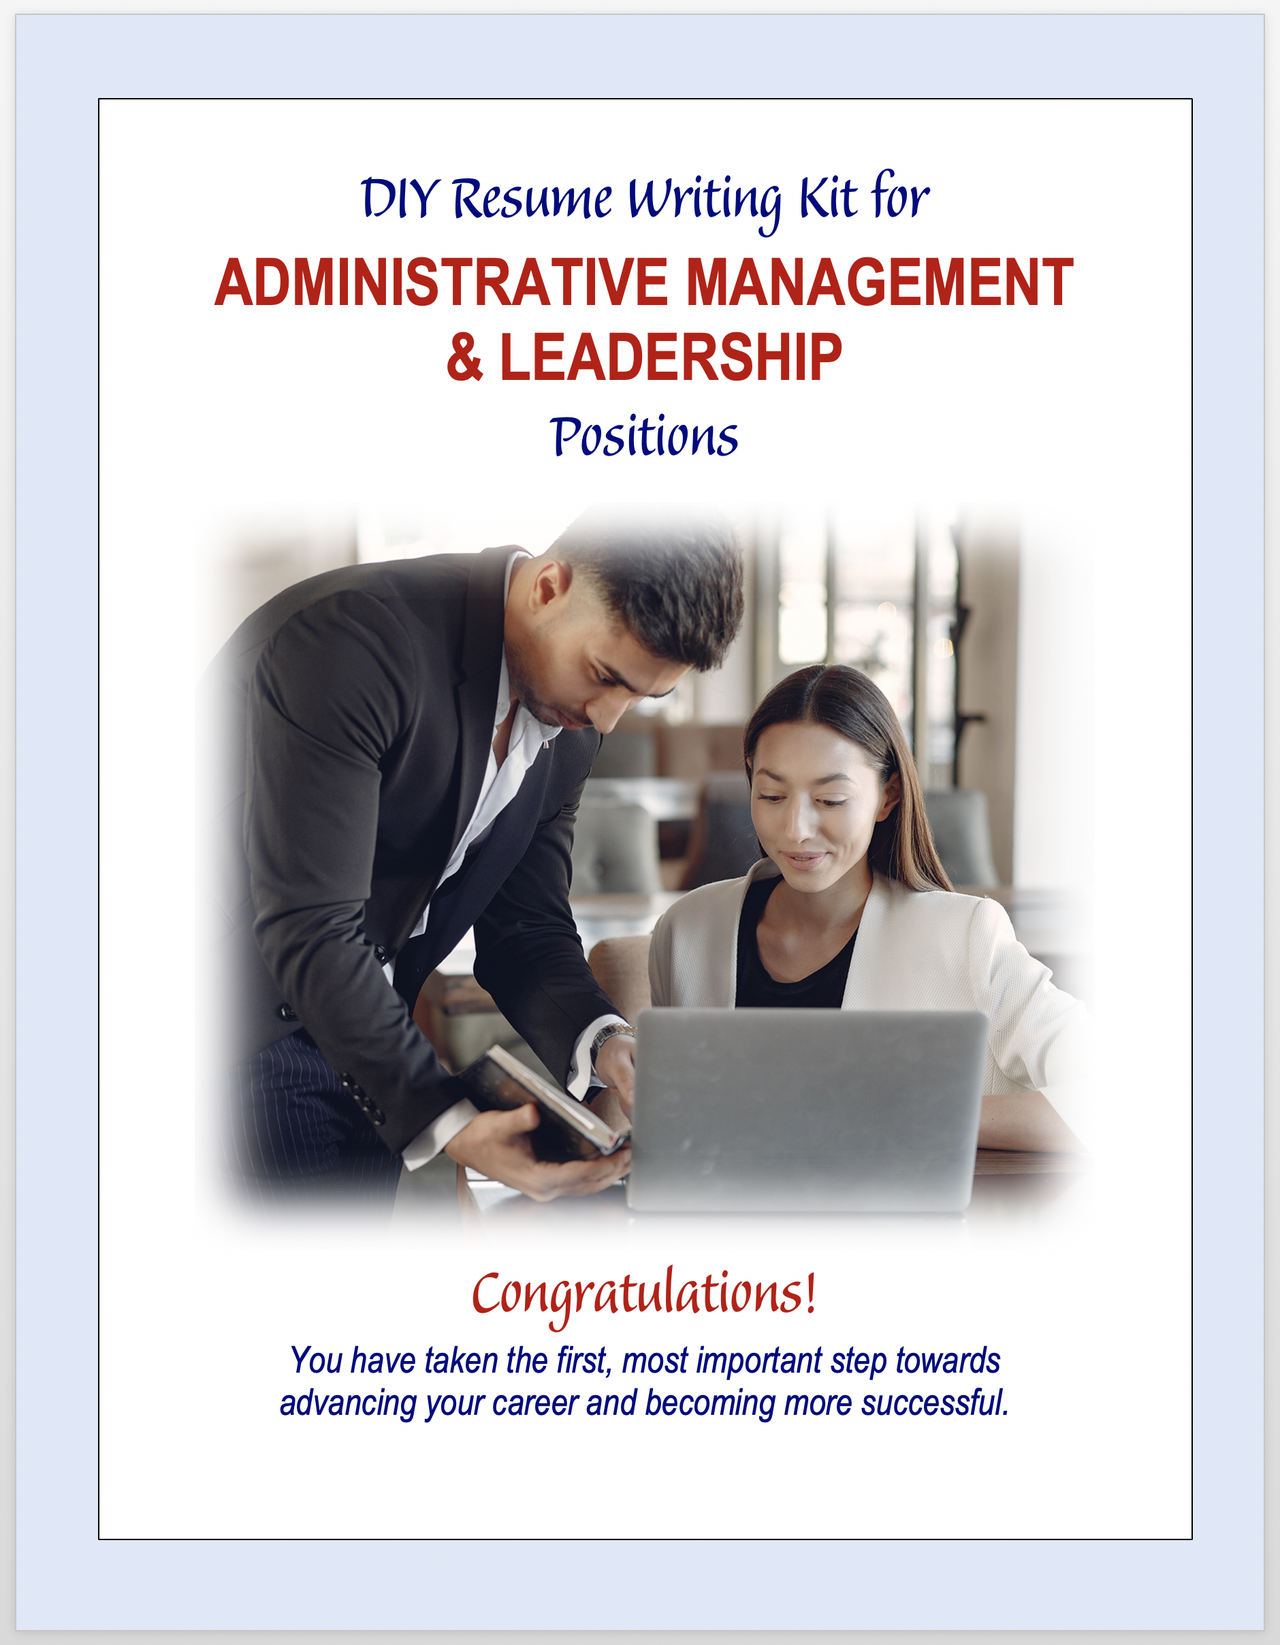 administrative management & leadership.png